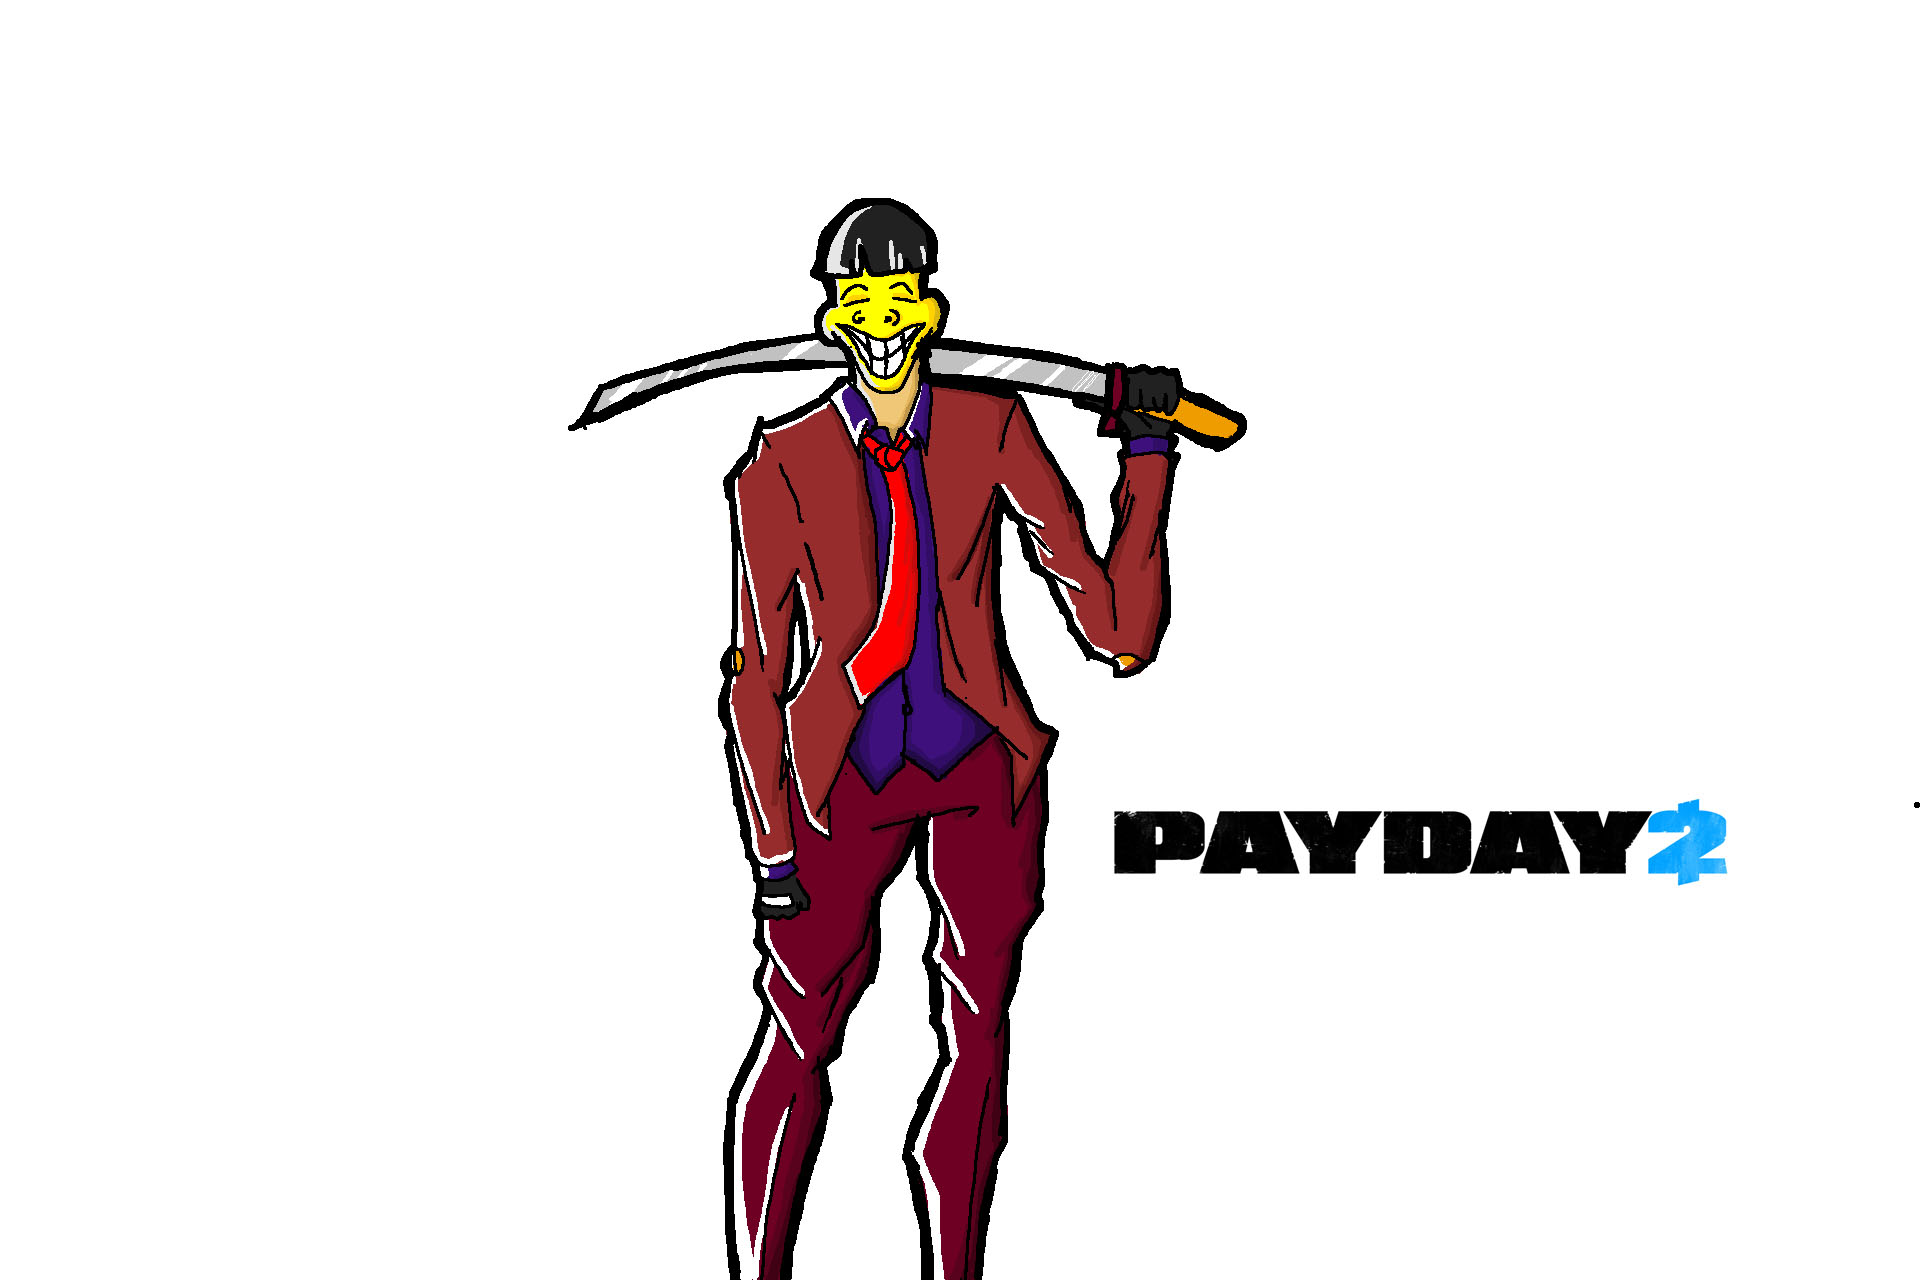 Asian payday 2